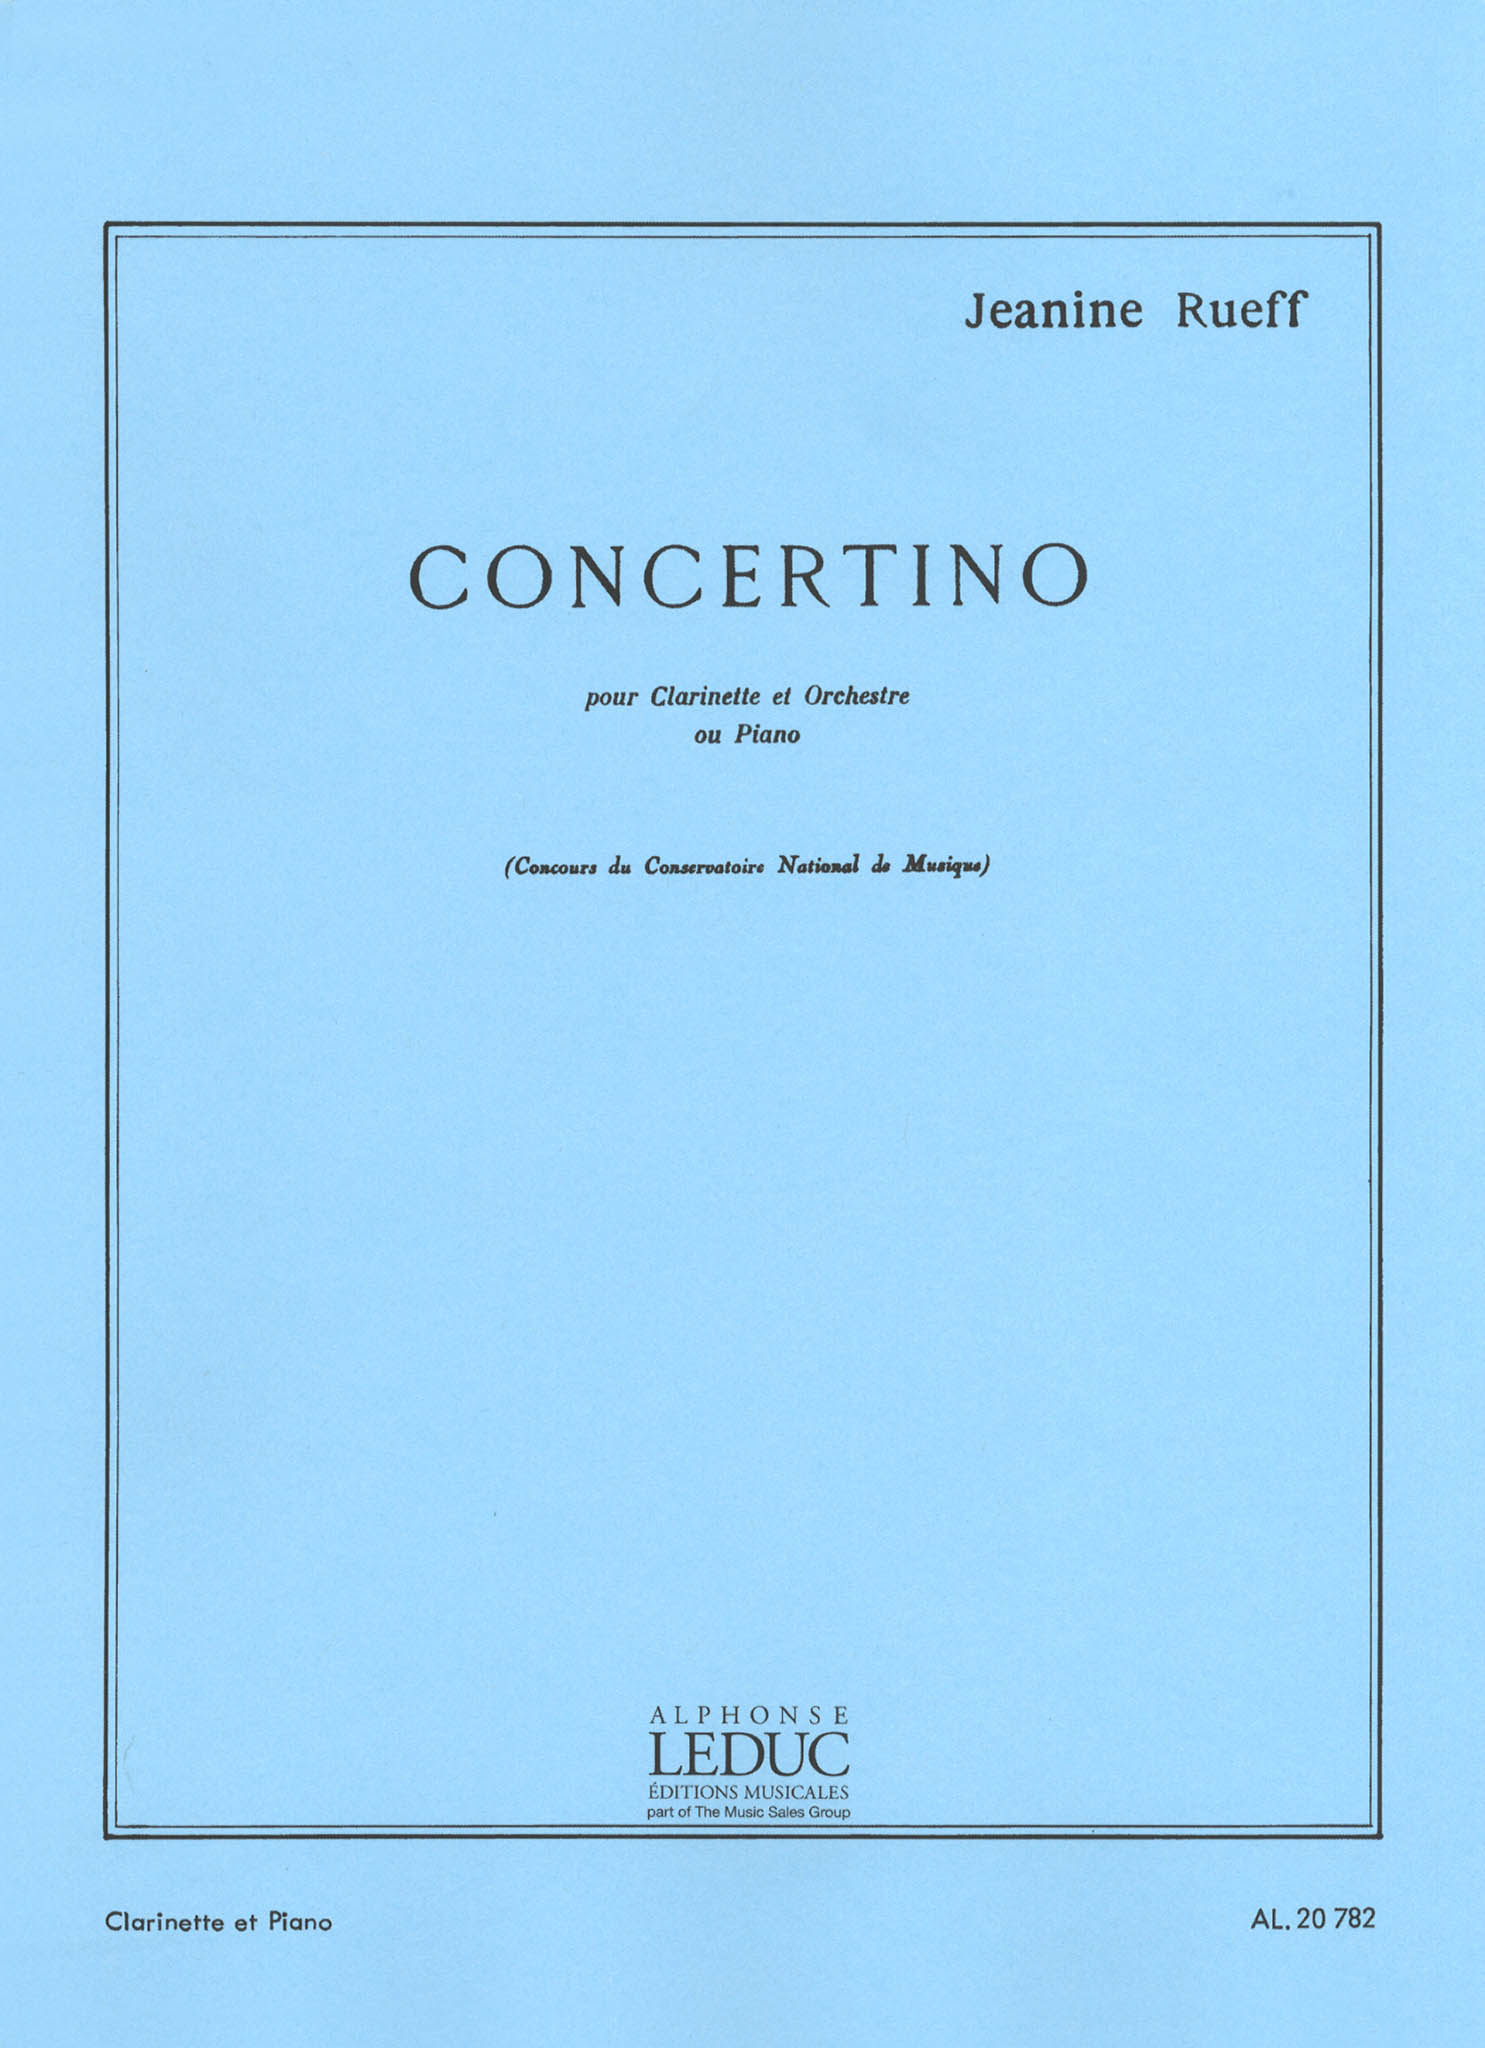 Rueff Clarinet Concertino, Op. 15 Cover